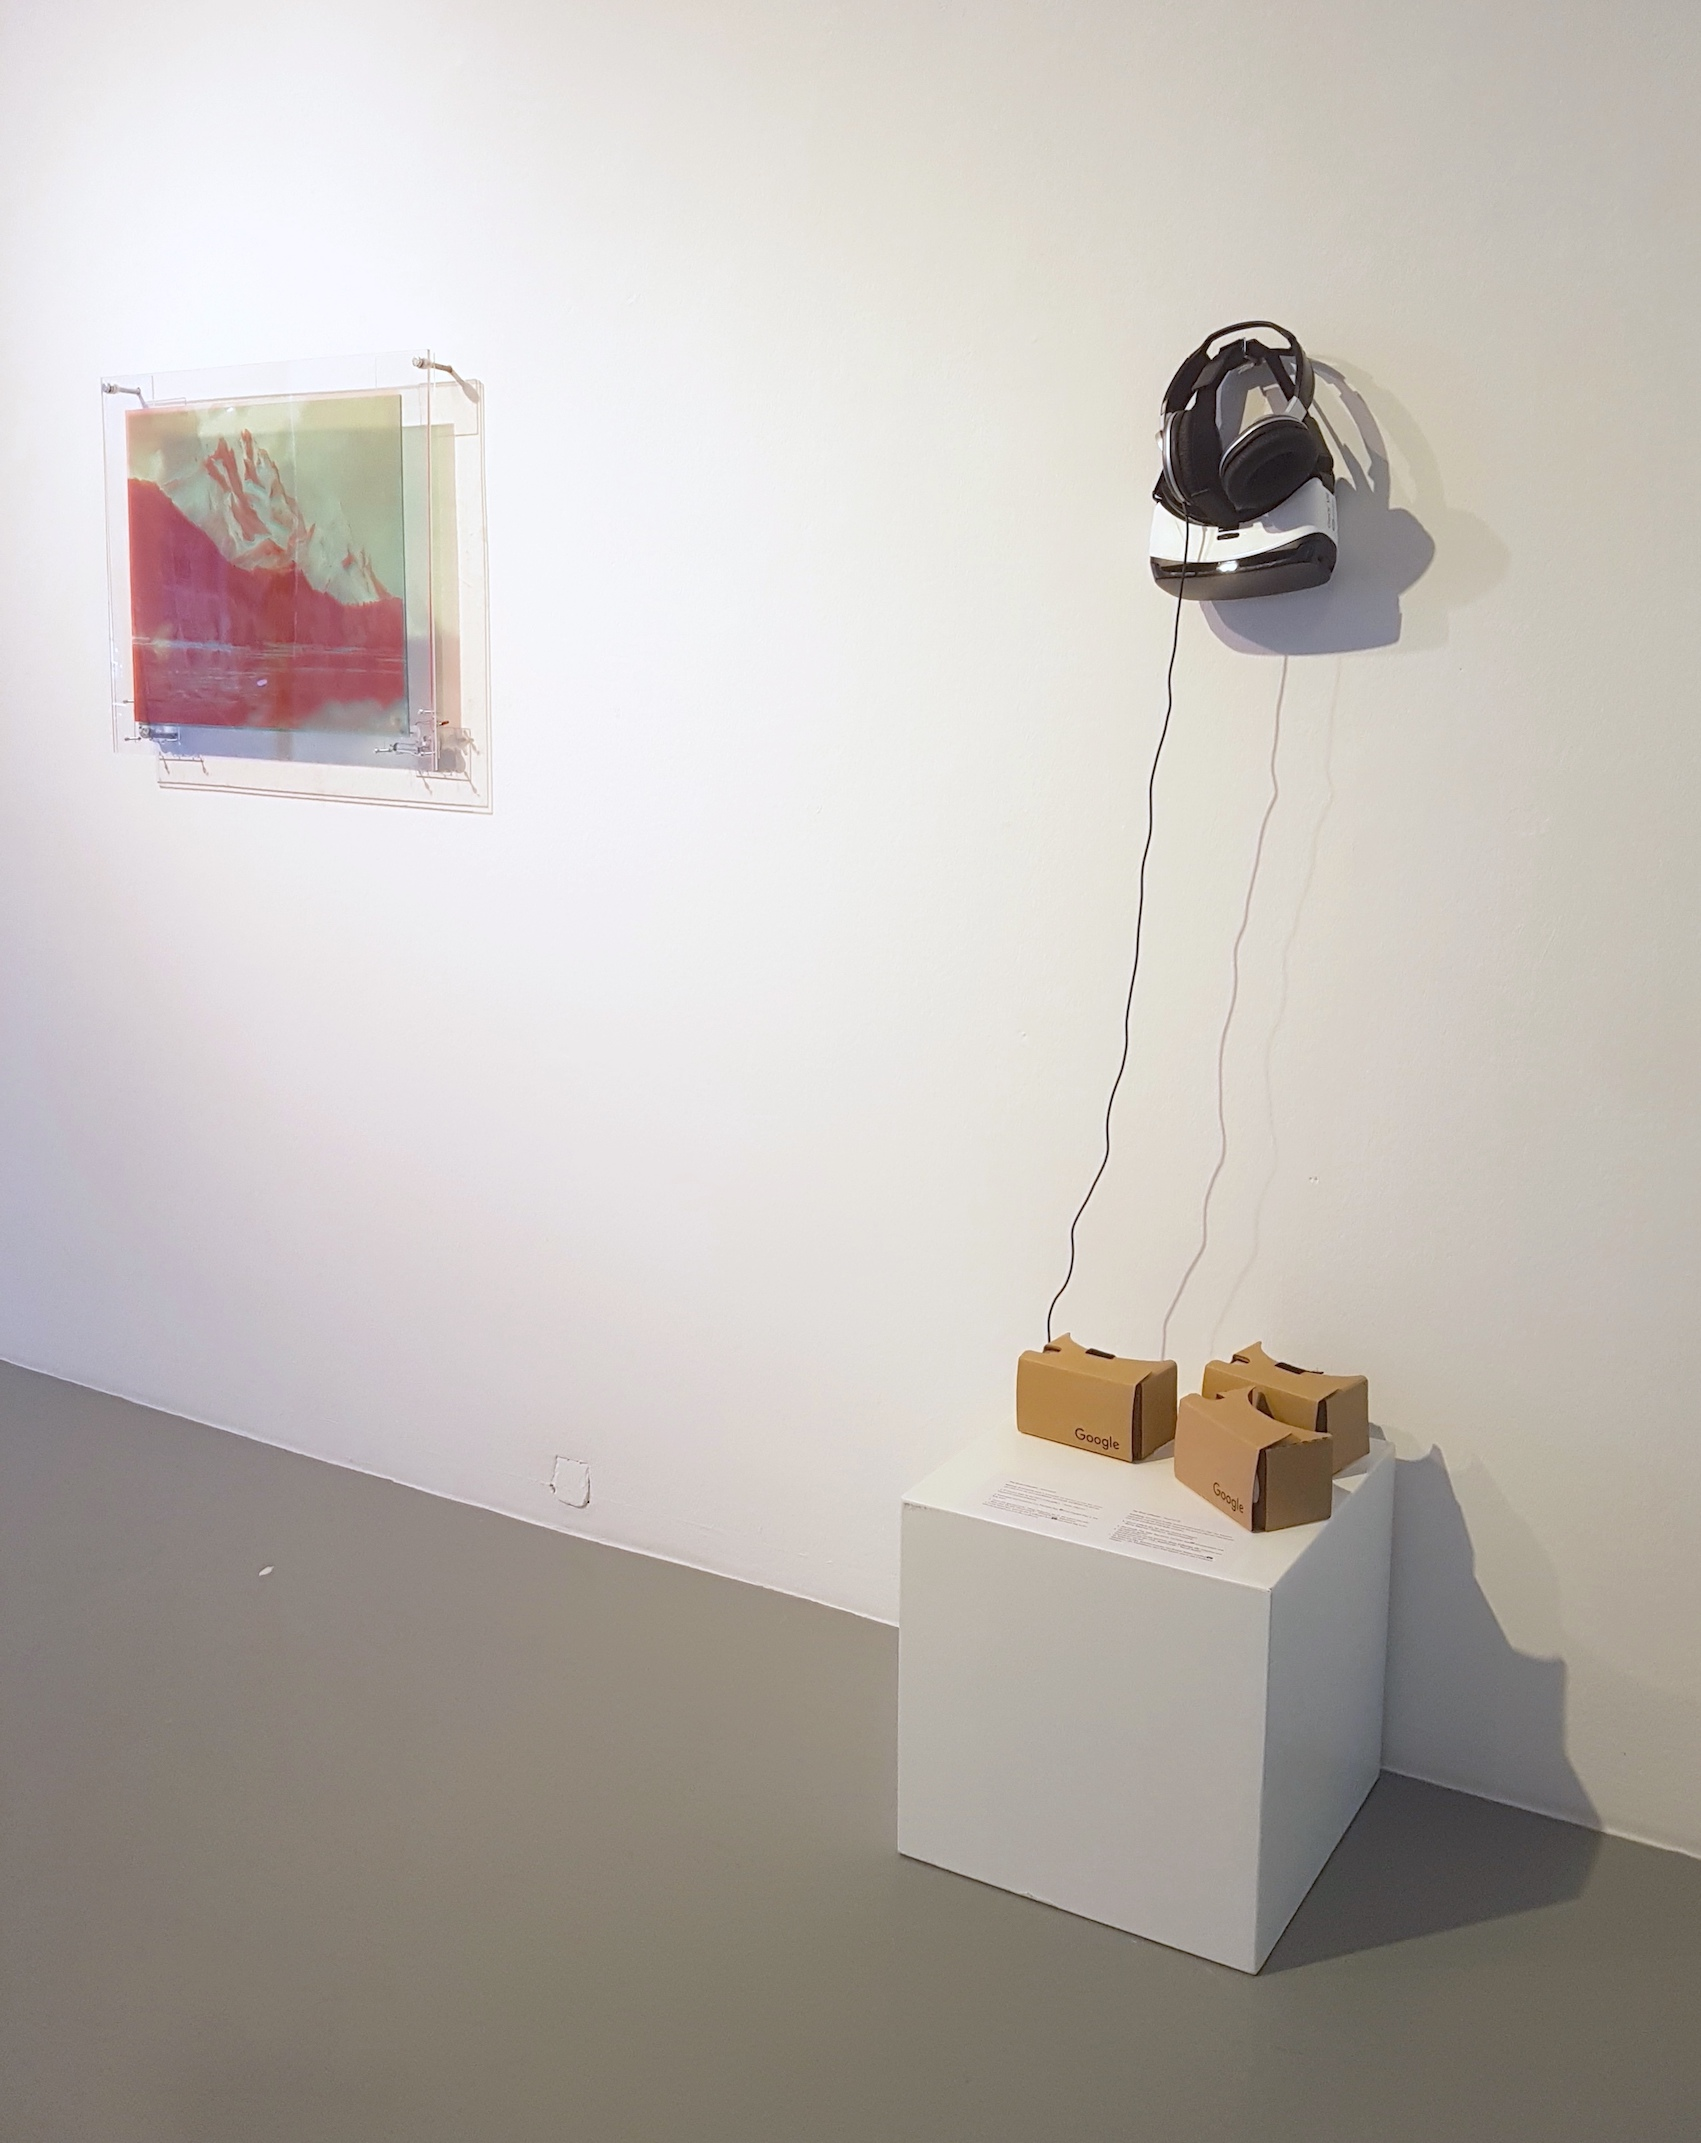 Exhibition view RESET III AND VIRTUAL REALITY, artworks by Judith Sönnicken and The Swan Collective